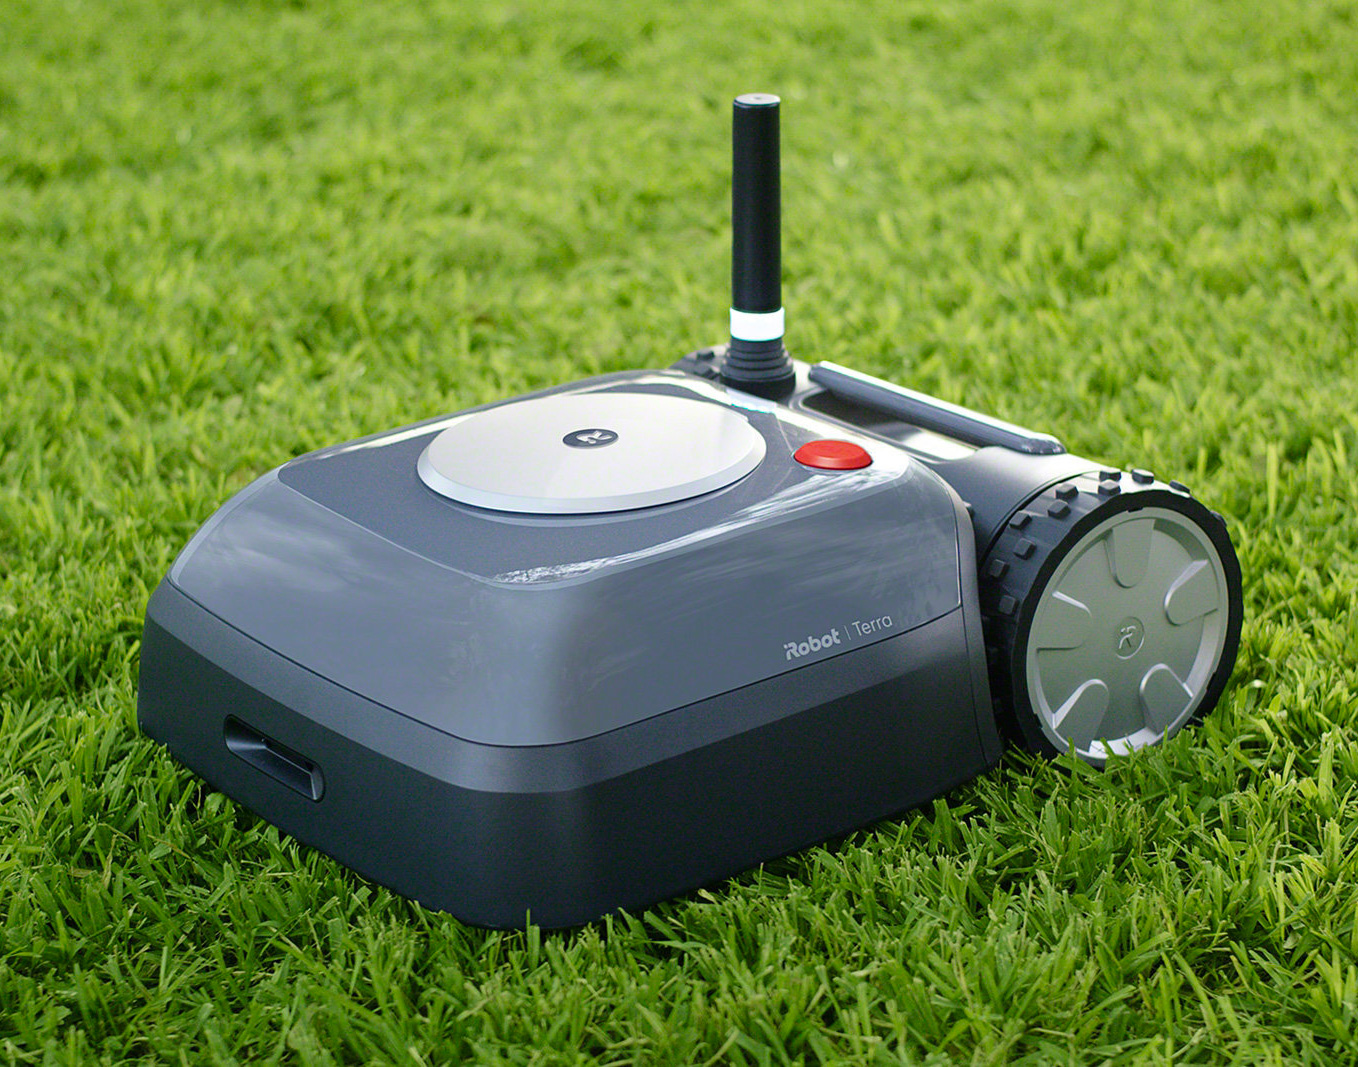 Let This Radical Robot Mow Your Lawn at werd.com